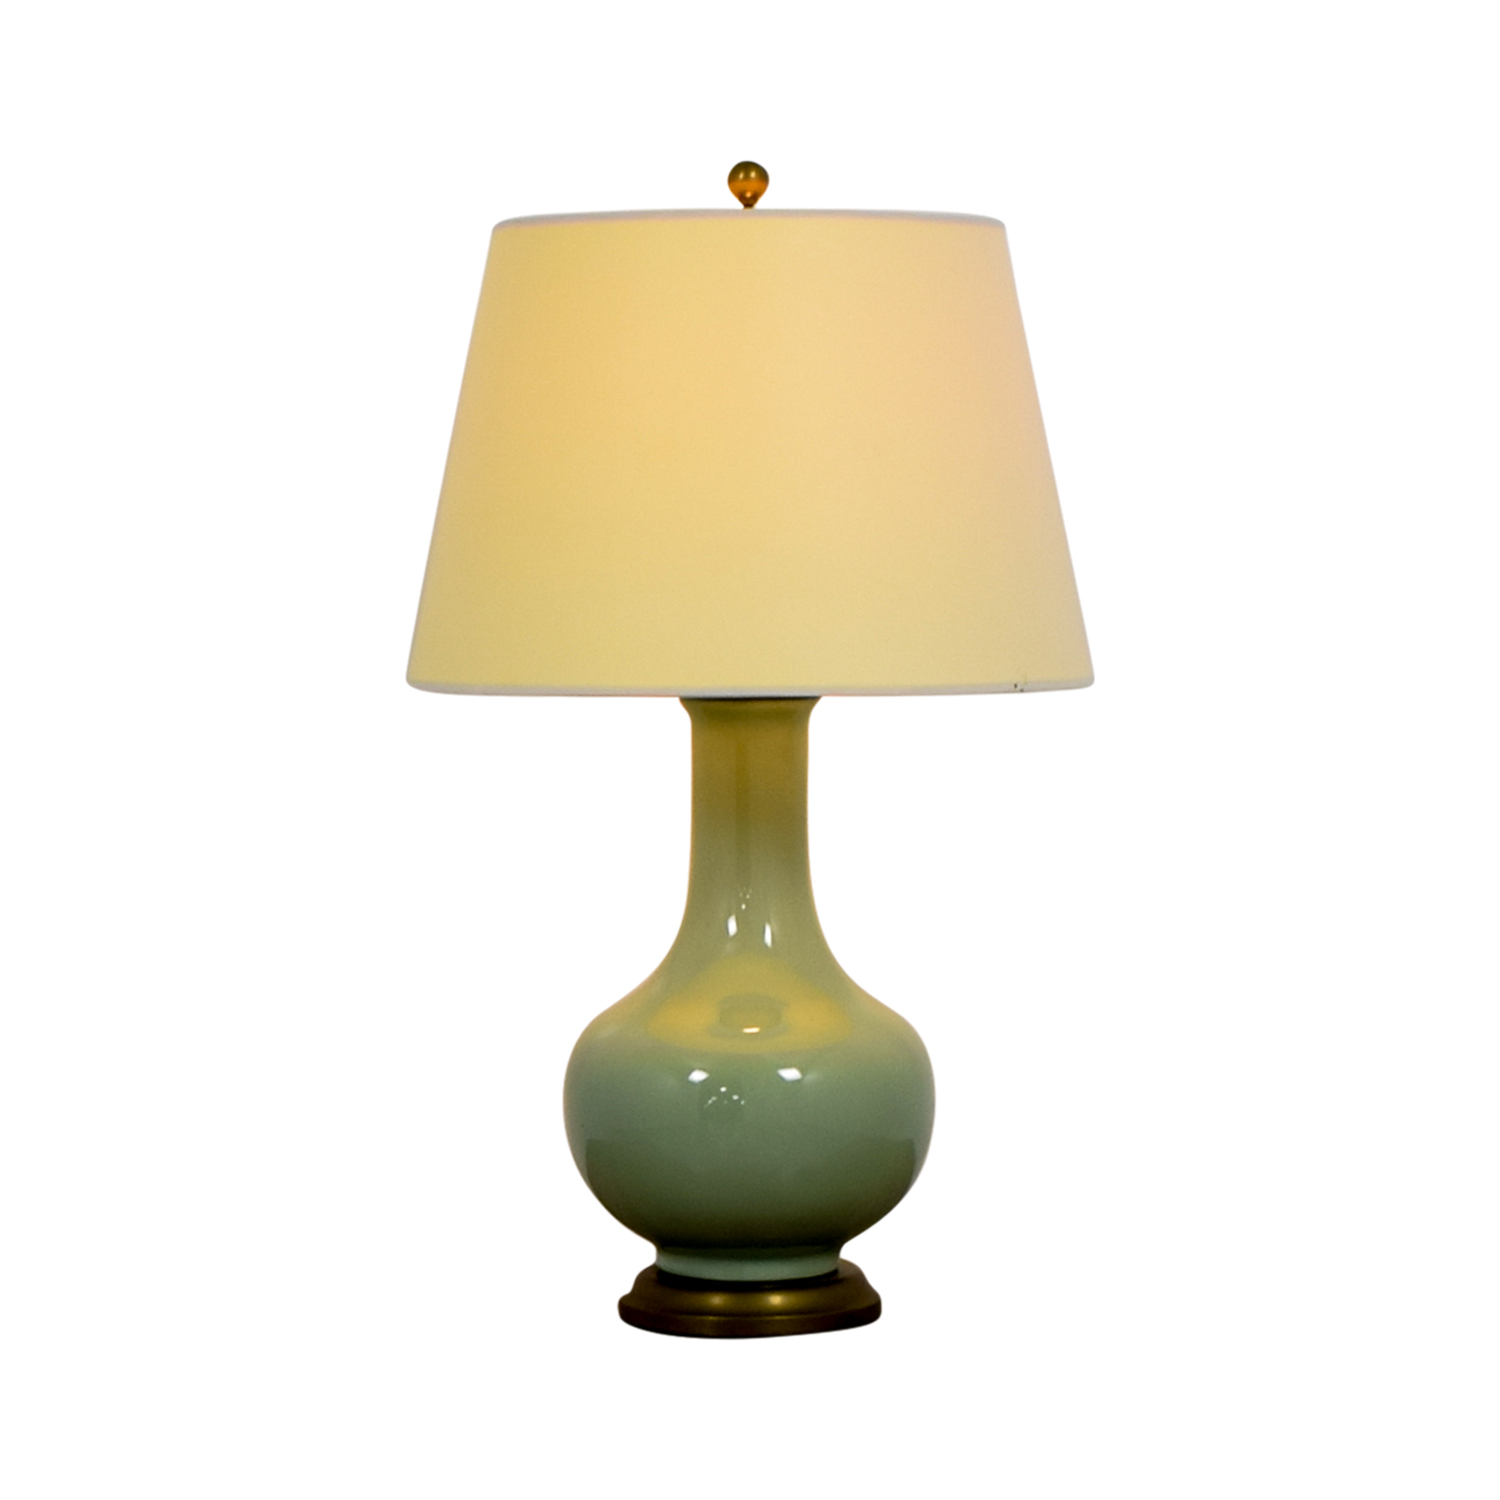 Williams Sonoma Home Williams Sonoma Home Mint Green Ceramic and Brass Table Lamp nj